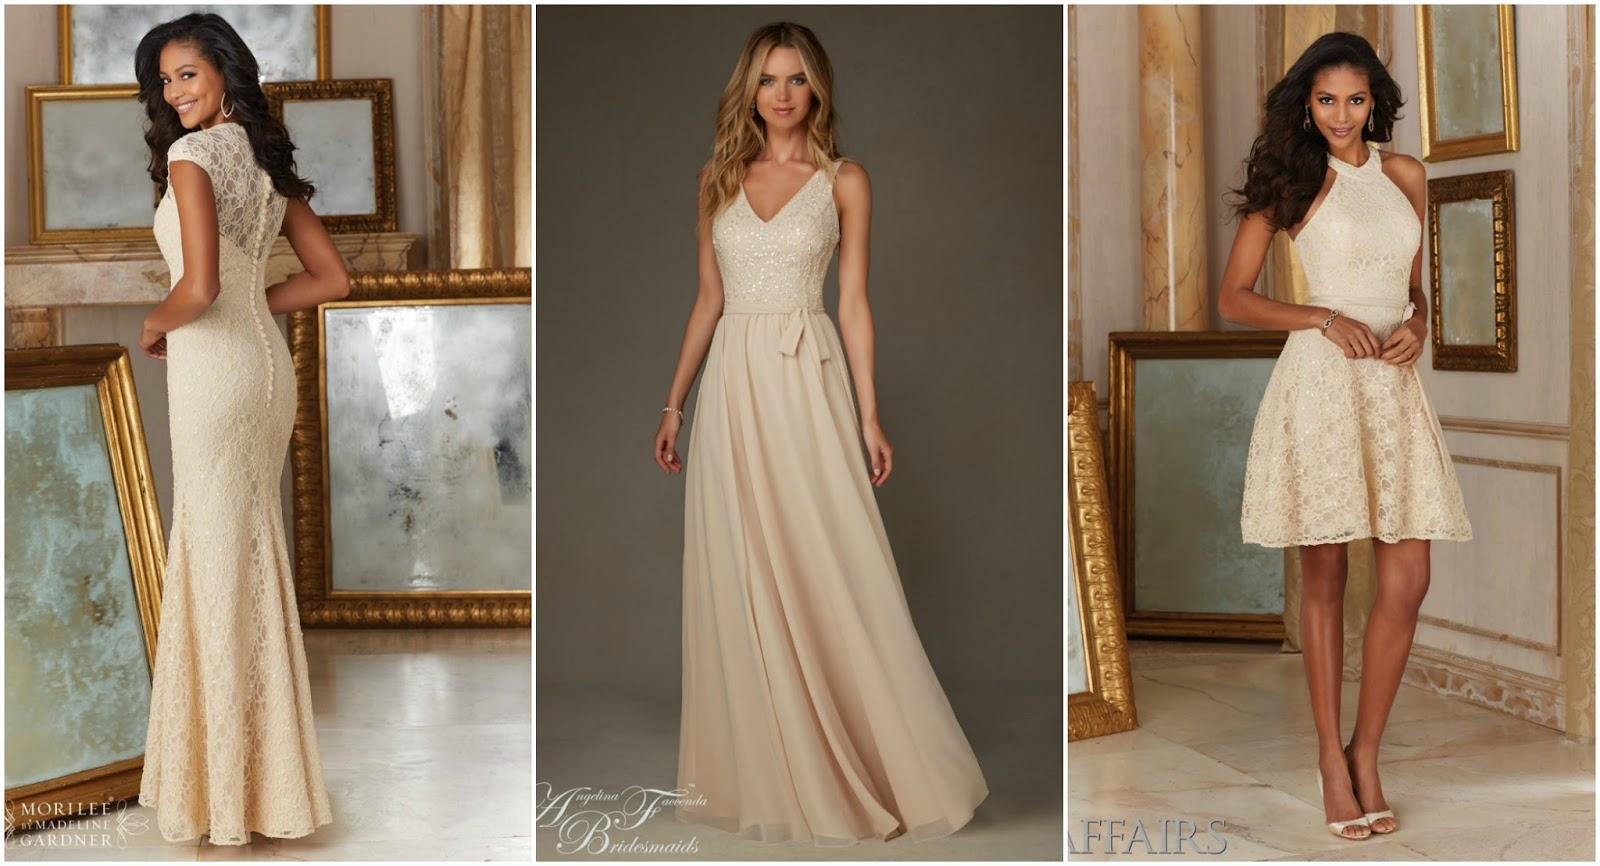 Brides of america online store champagne latte for the champagne latte for the bridesmaids dresses that is ombrellifo Images